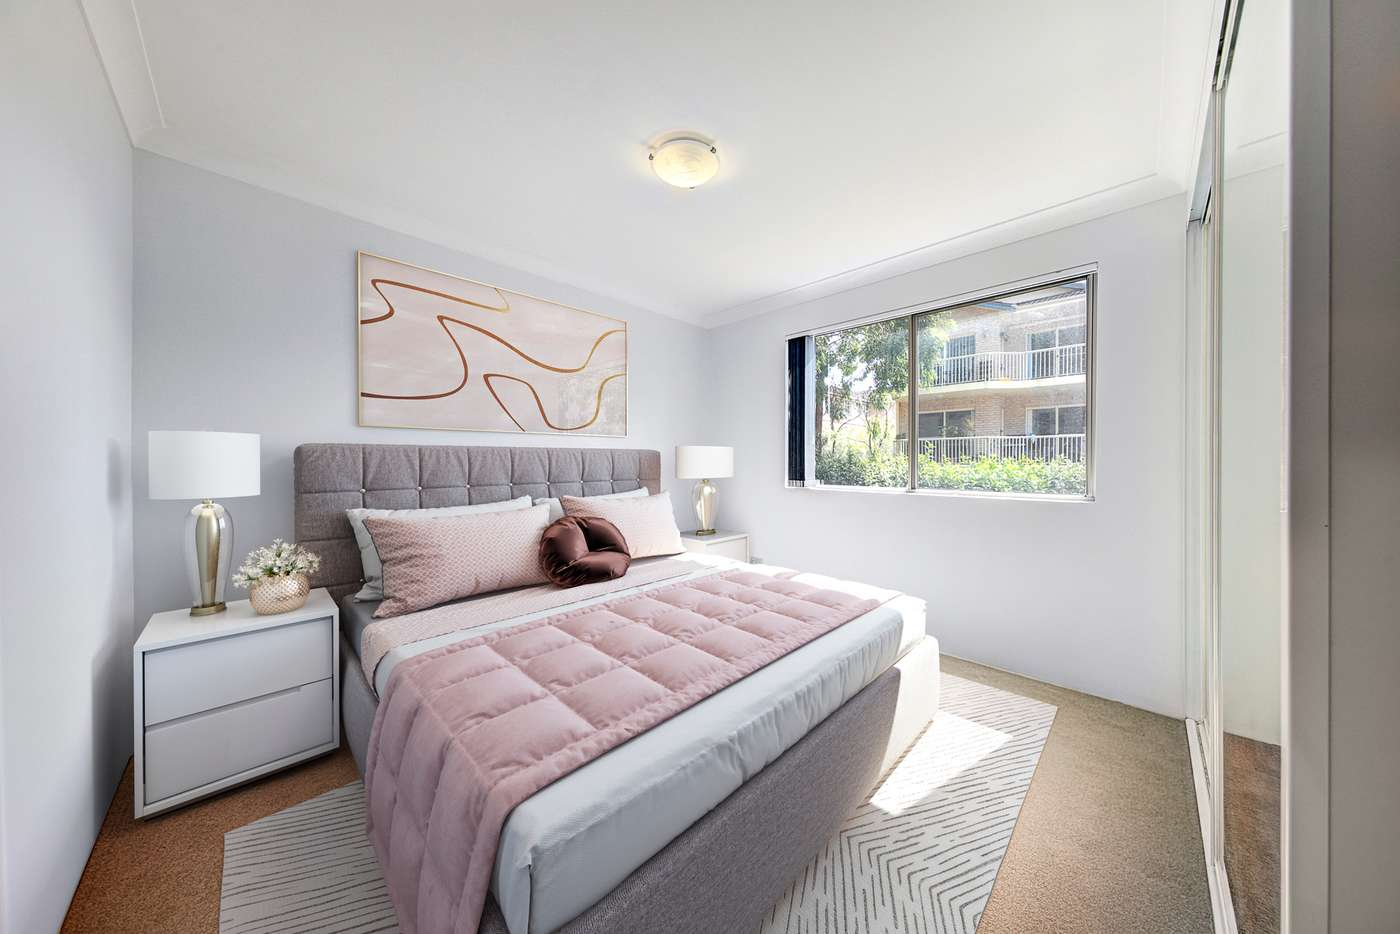 Fifth view of Homely apartment listing, 23/9-15 May Street, Hornsby NSW 2077